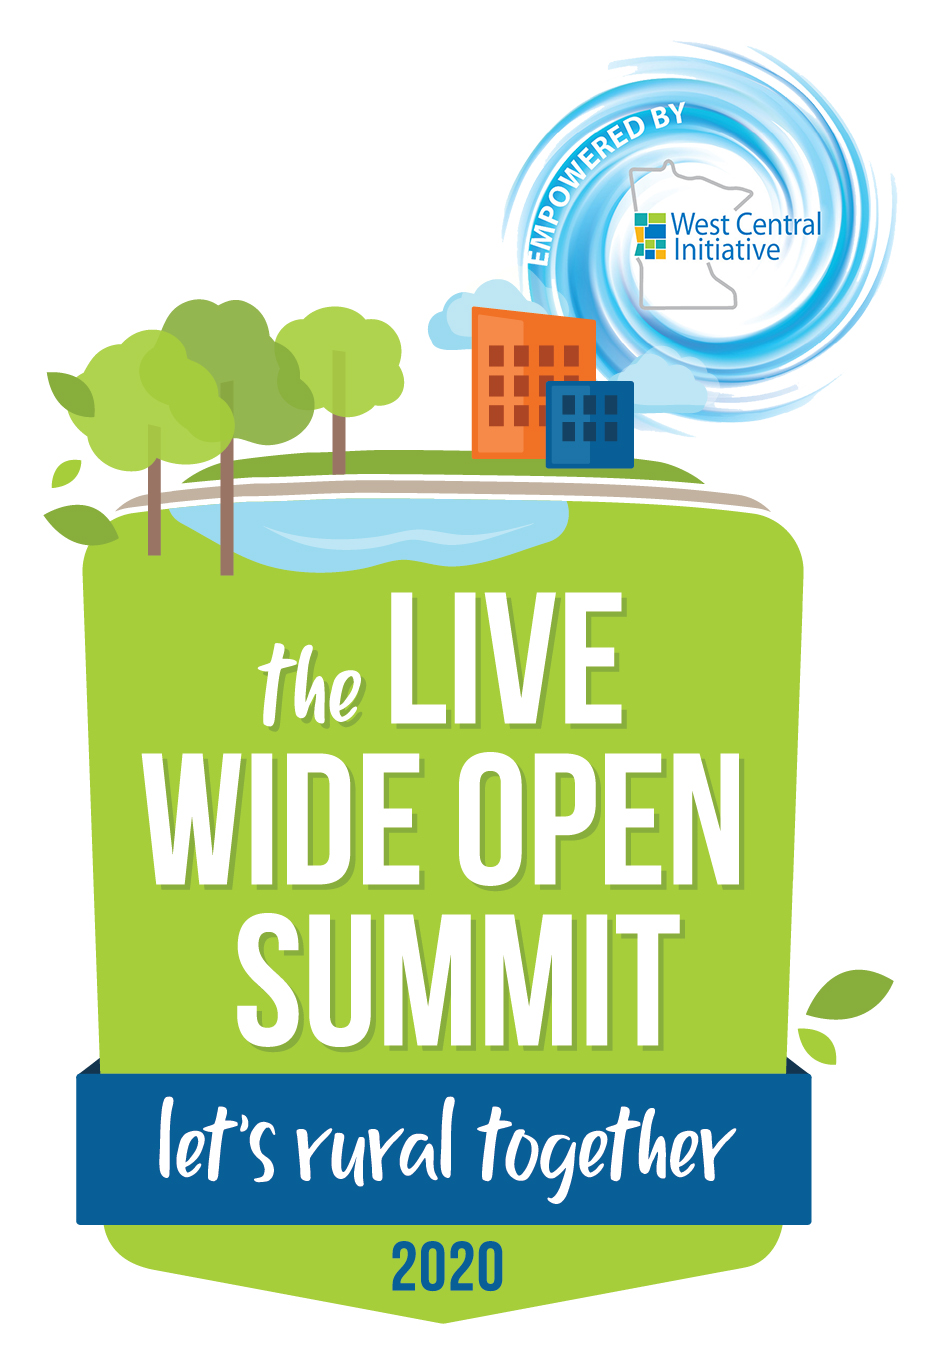 The Live Wide Open Summit